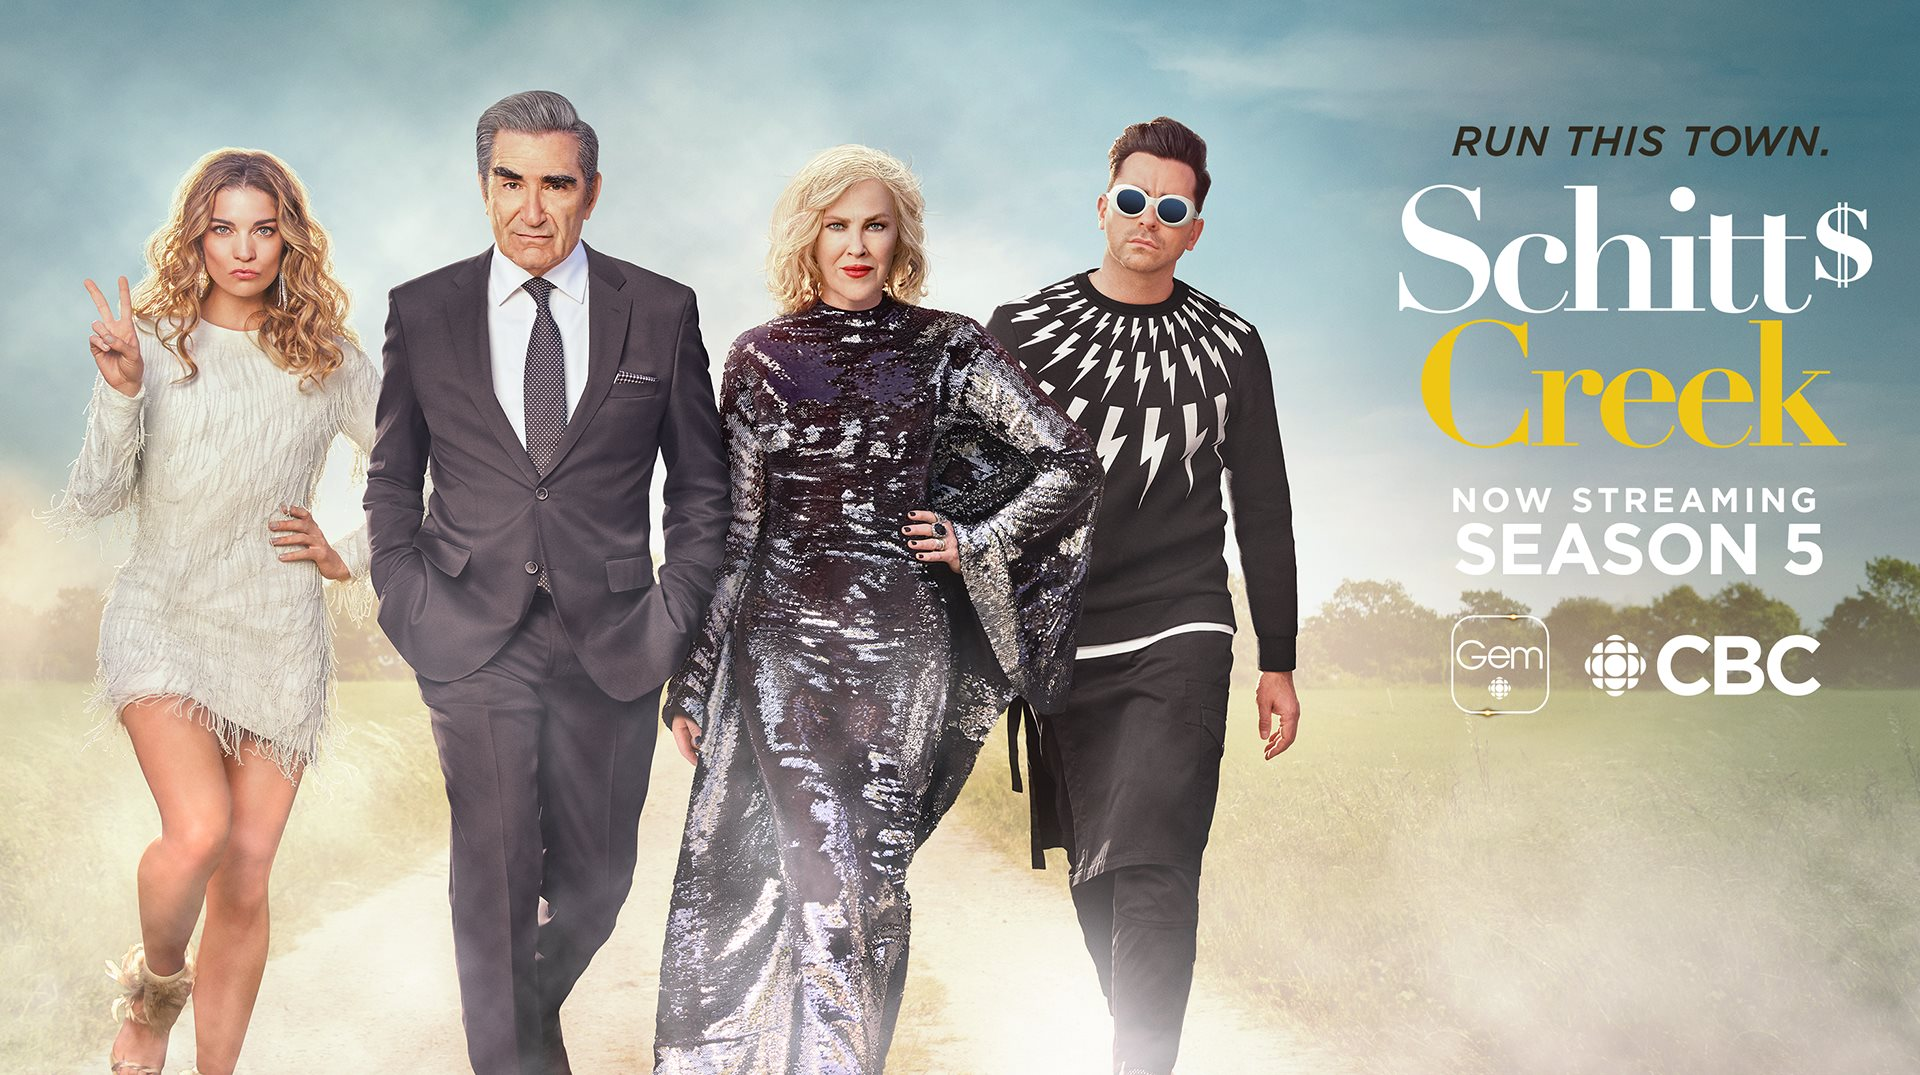 The astrology of Schitt's Creek by Dru Ish